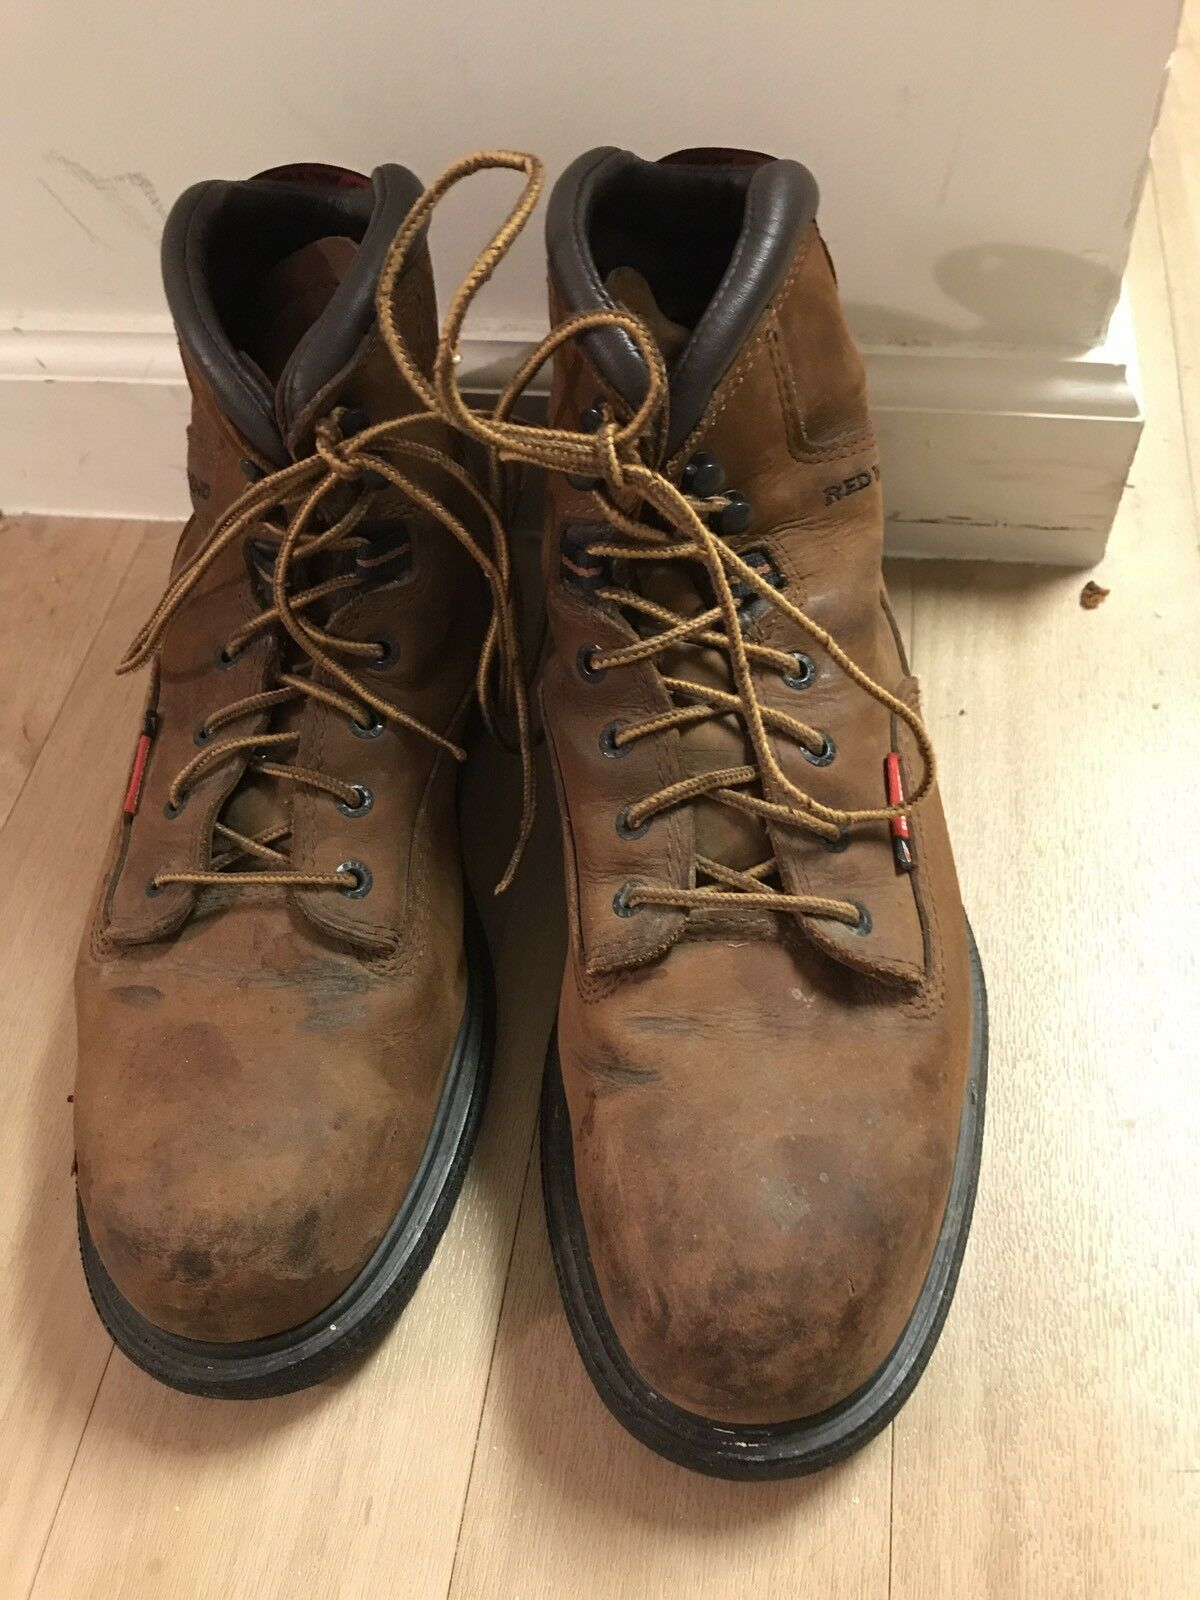 rot Wing  2222 6  Steel Steel Steel Toe Electrical Hazard Leather Work Stiefel 10 EE  USA Made 887fa7